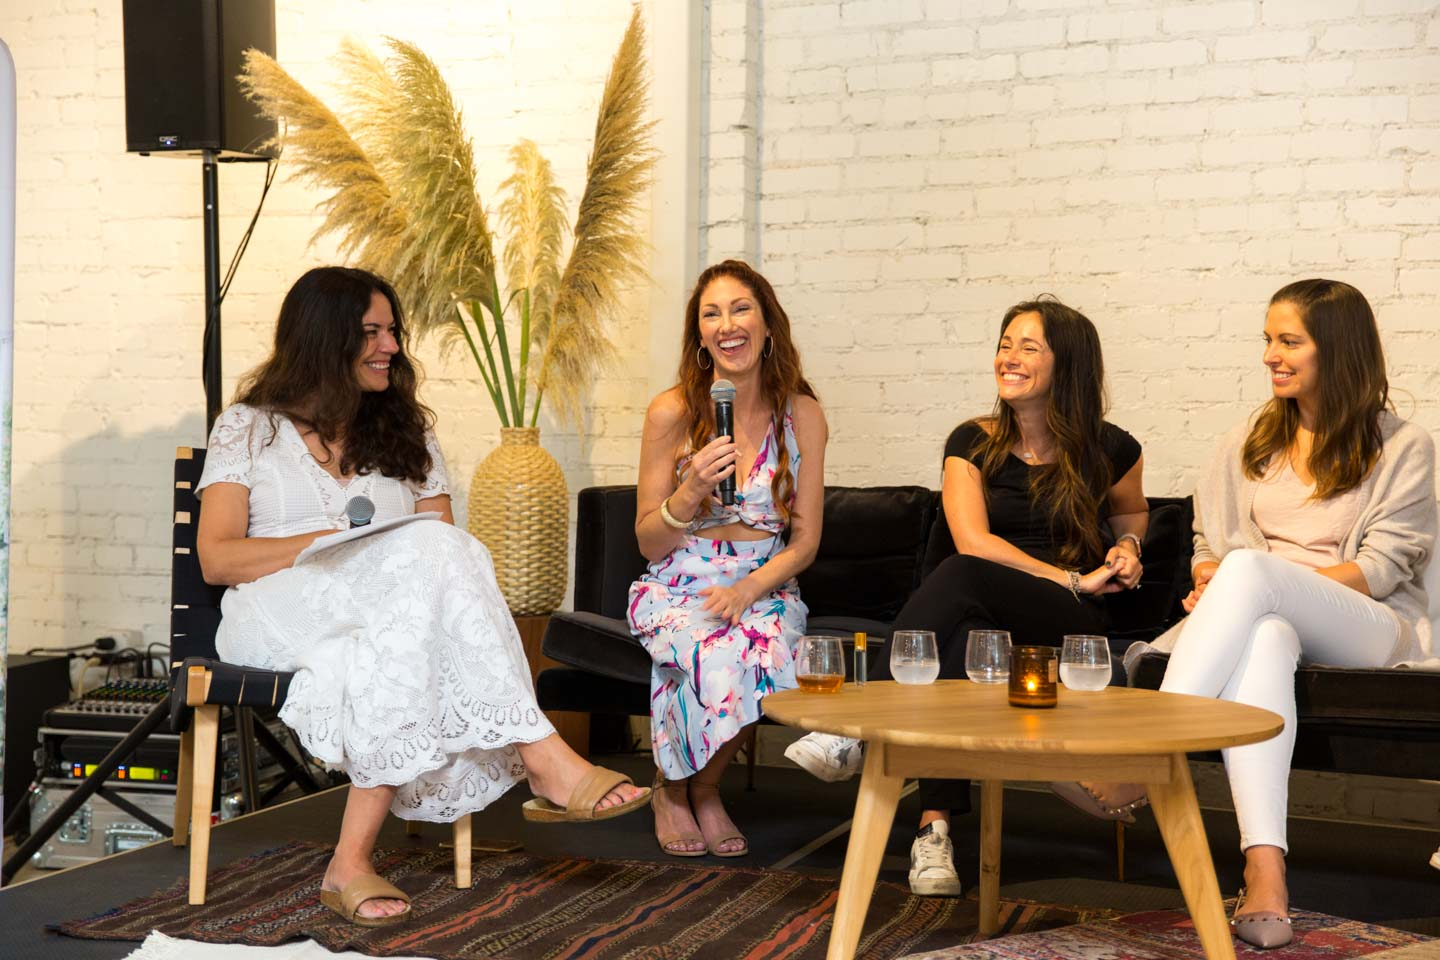 Fourth Trimester Expert Panel at the Ergobaby Embrace Launch